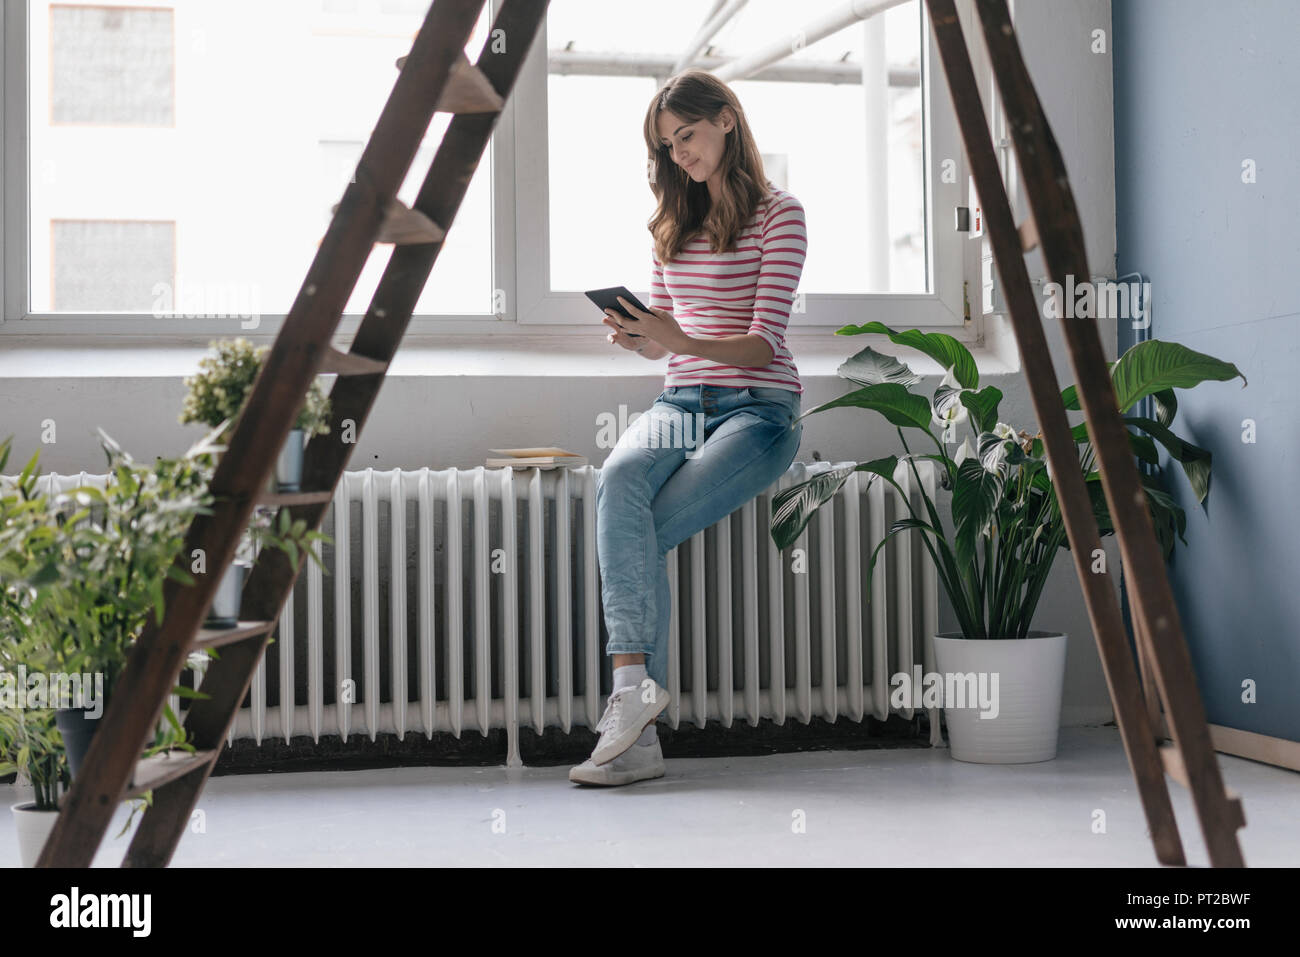 Woman sitting on radiator in her new home, reading e-book, surrounded by plants Stock Photo